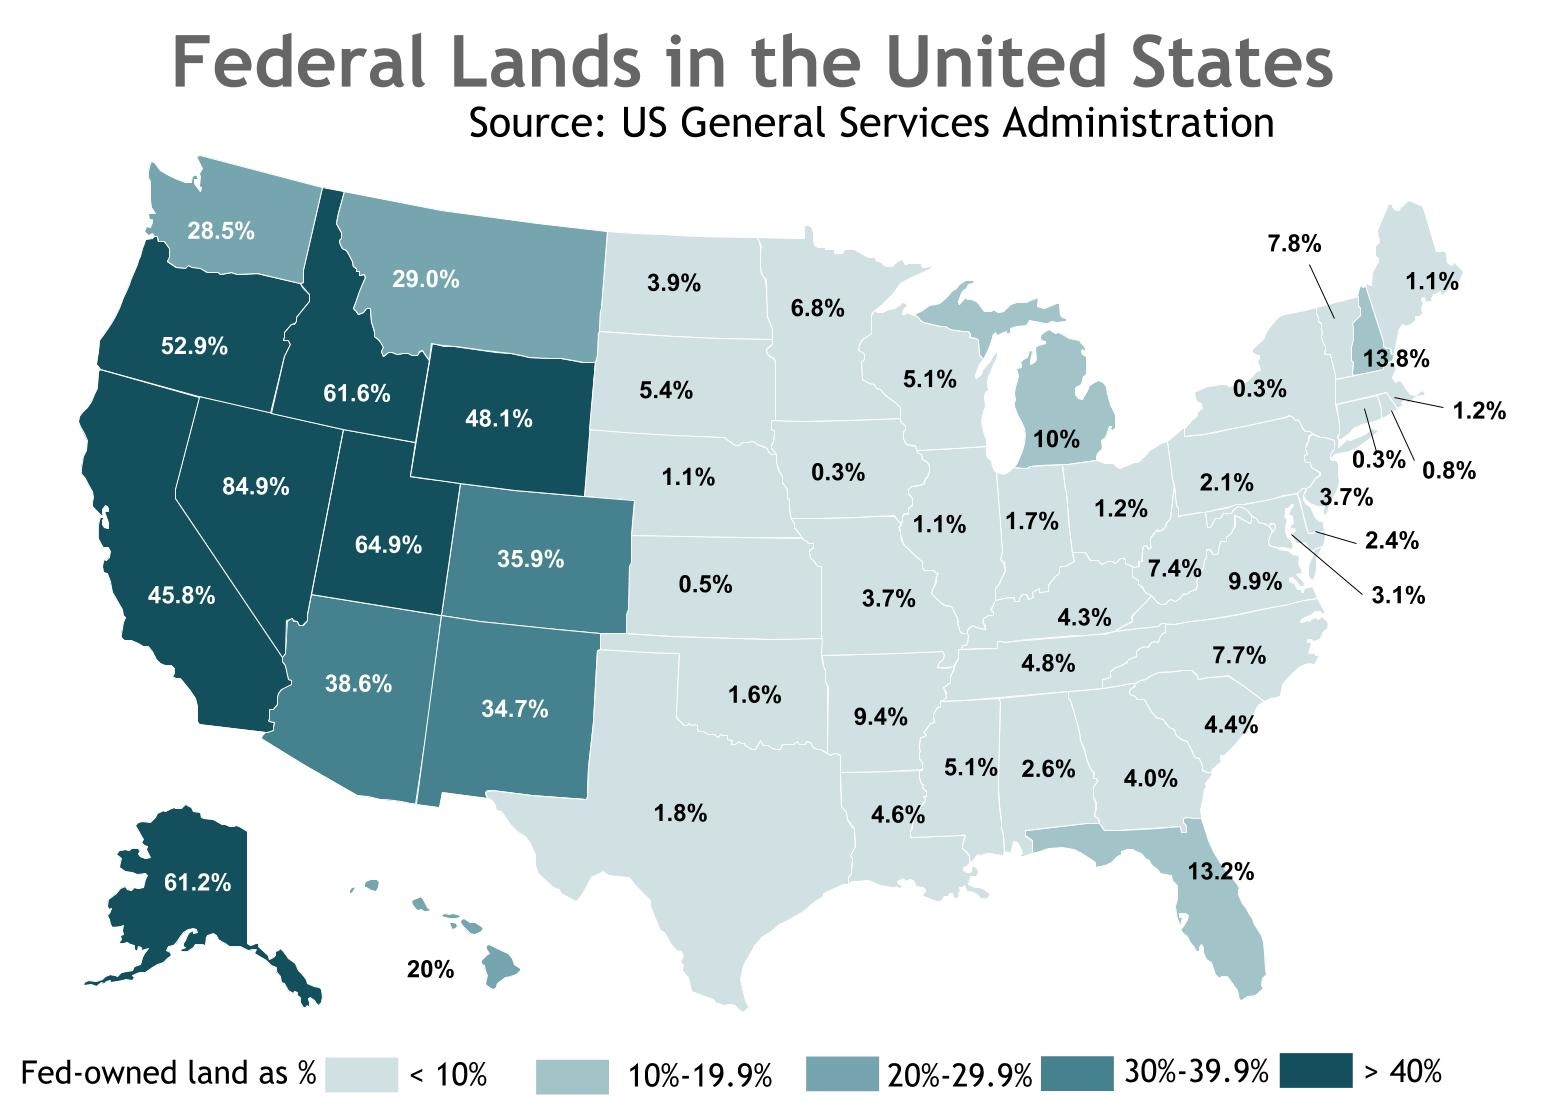 Colorado Economy Journal: How important is Cattle Ranching in the West?